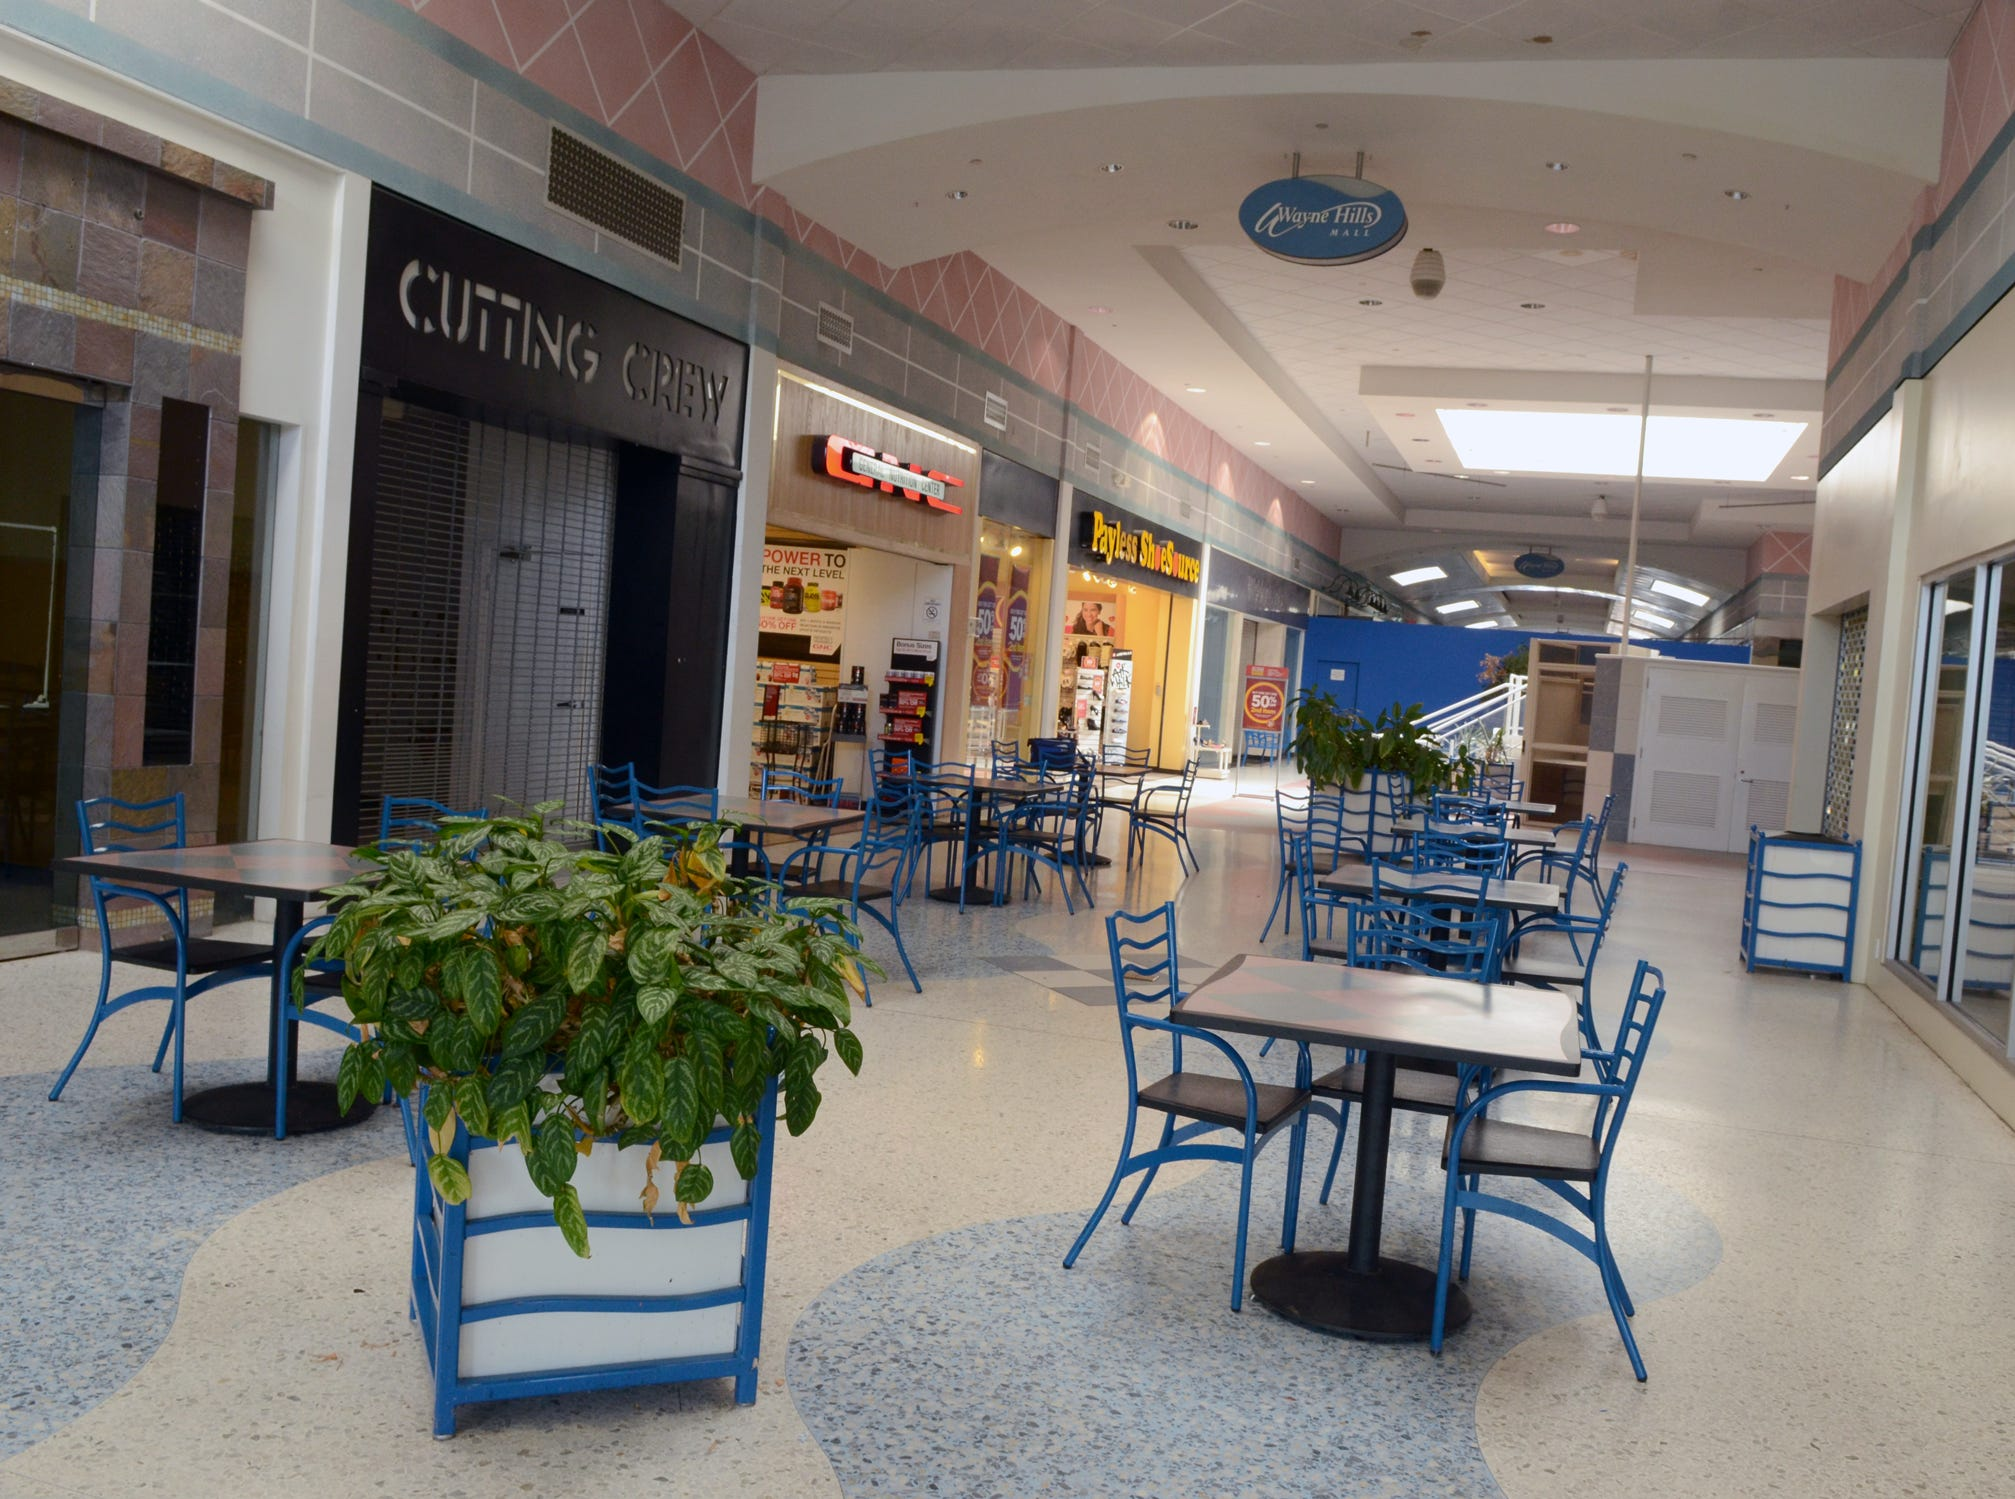 Wayne Hills Mall interior Sept. 24, 2013.